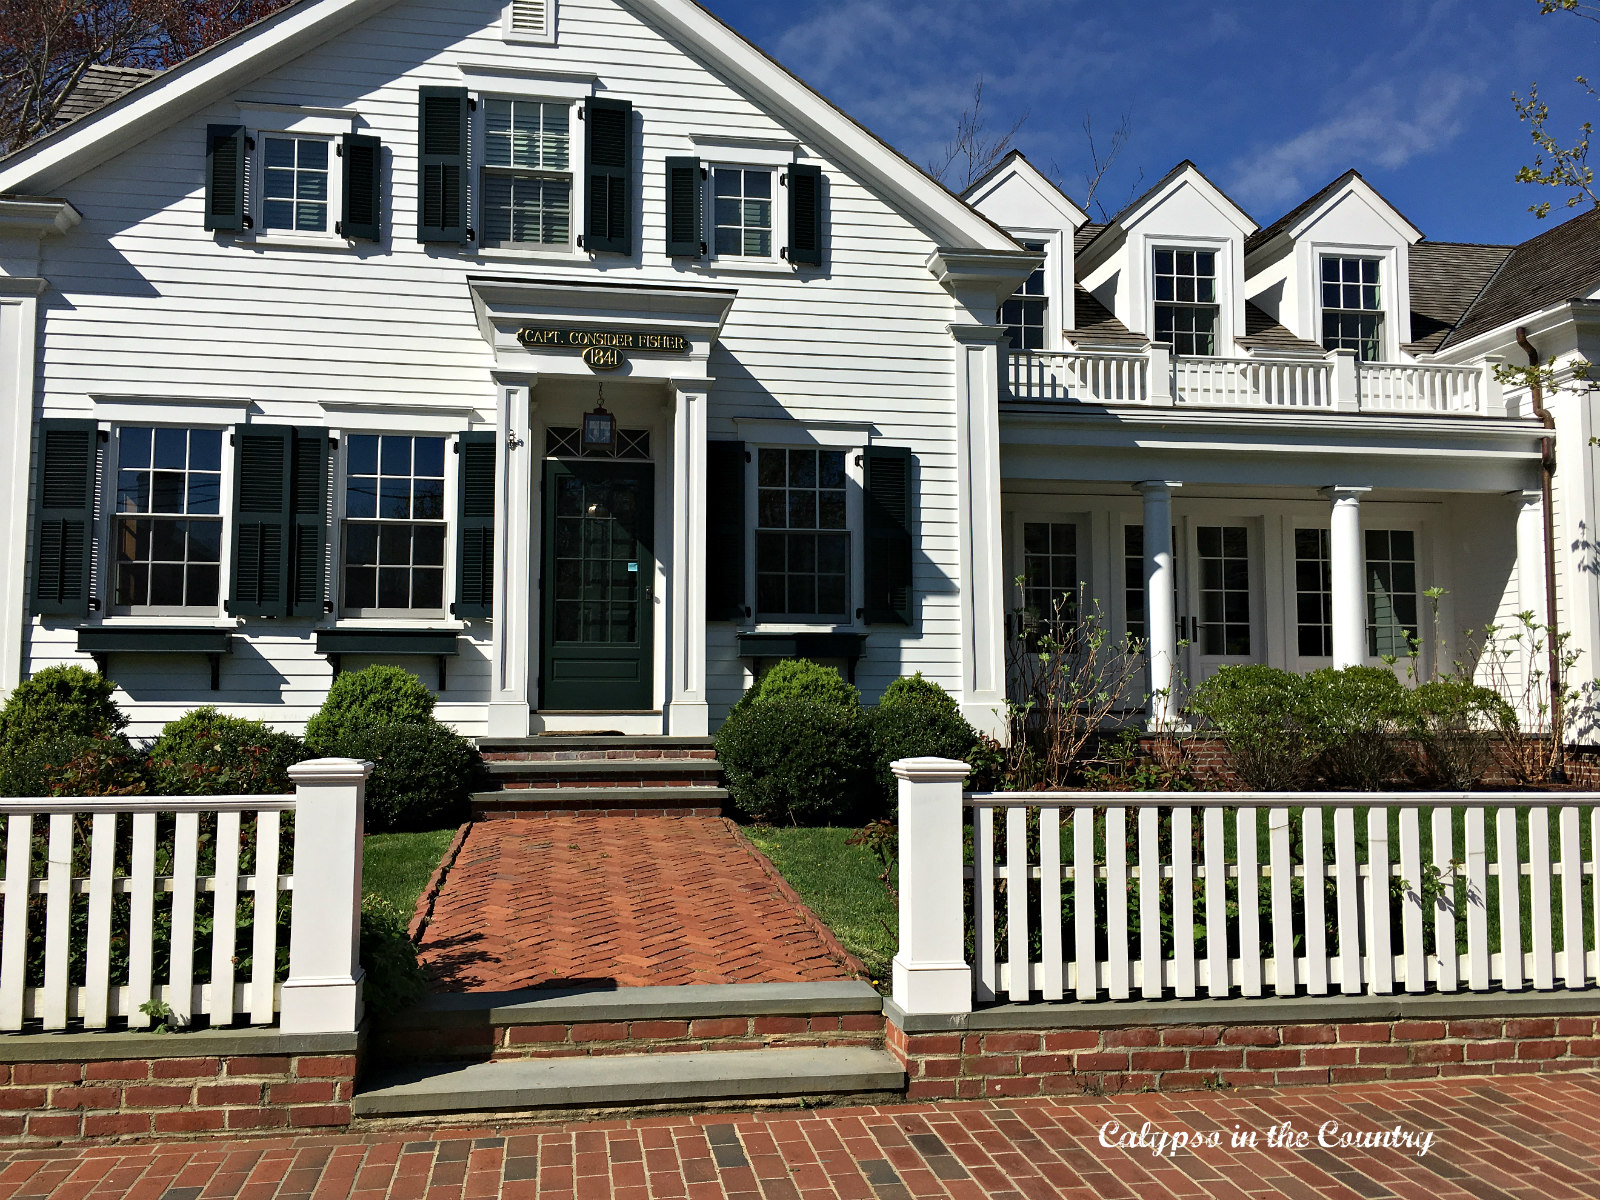 edgartown girls Girls' weekend guide to martha's  girls' weekend guide to beautiful martha's vineyard  we stayed at the iconic harbor view hotel in edgartown which was just .